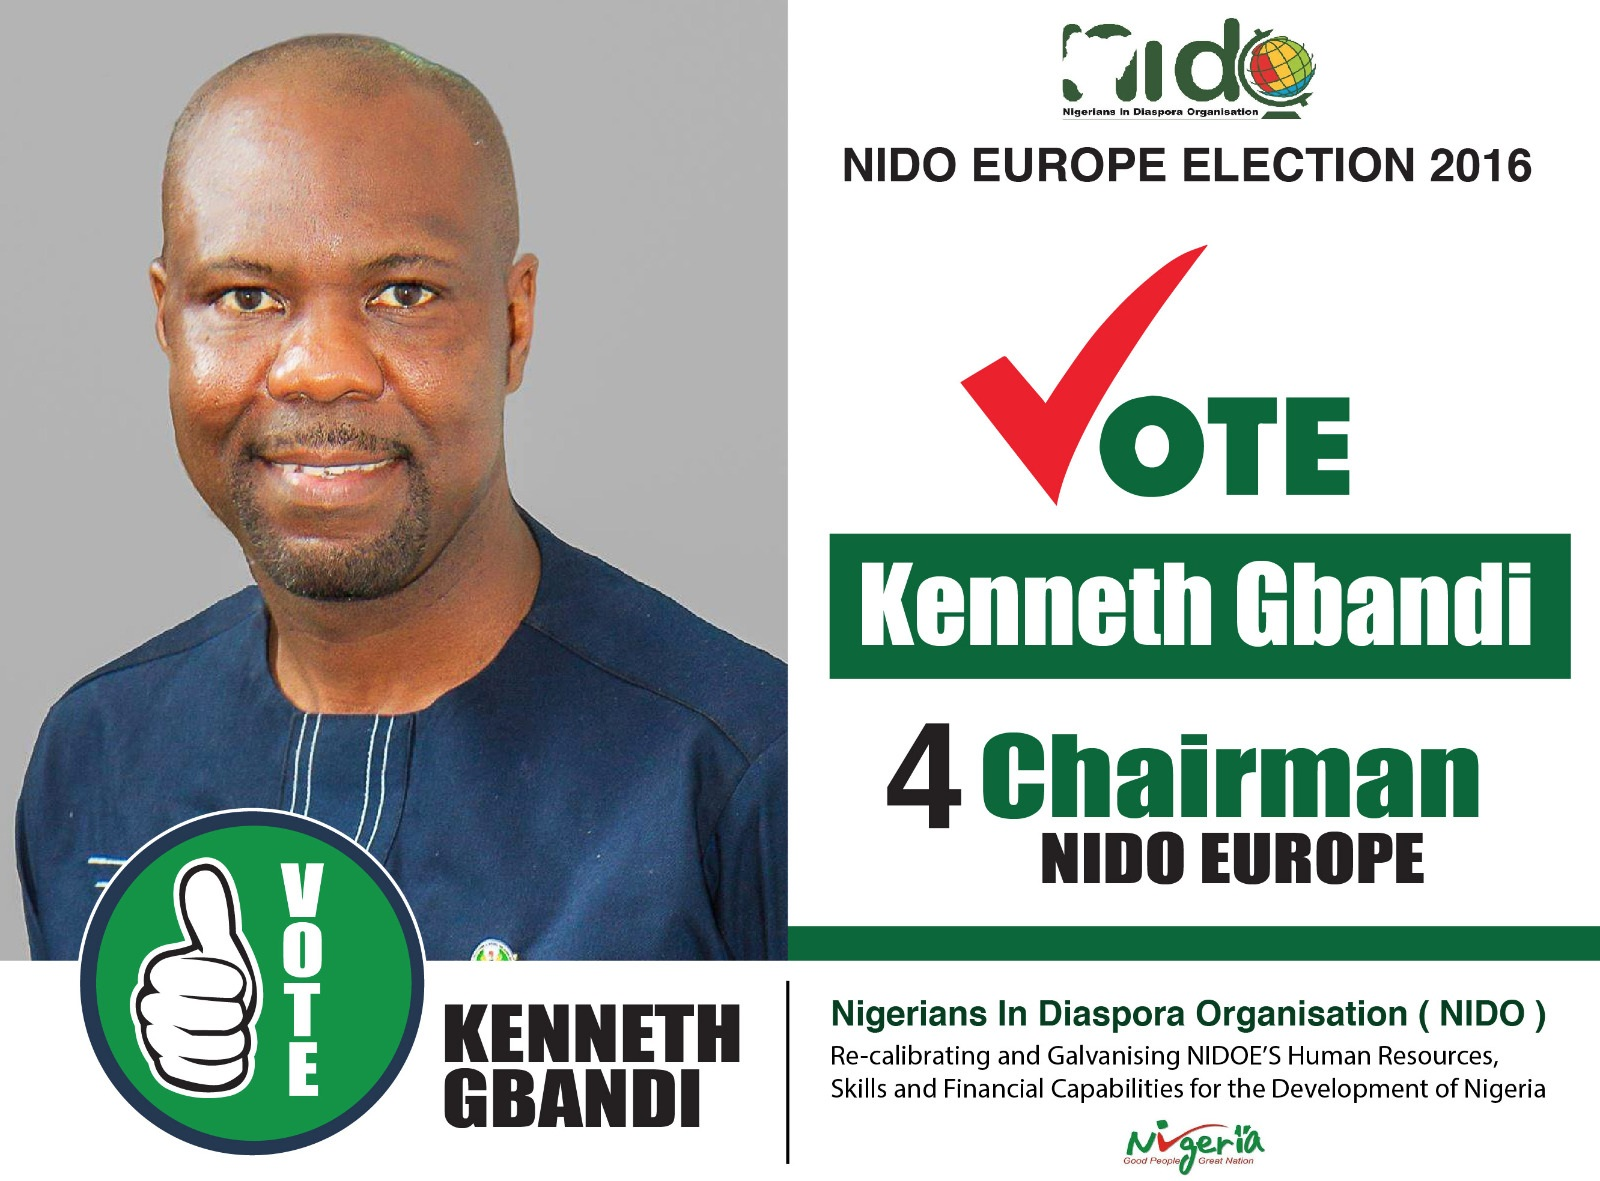 Kenneth Gbandi's campaign poster. He's contesting for the chair of NIDO Europe